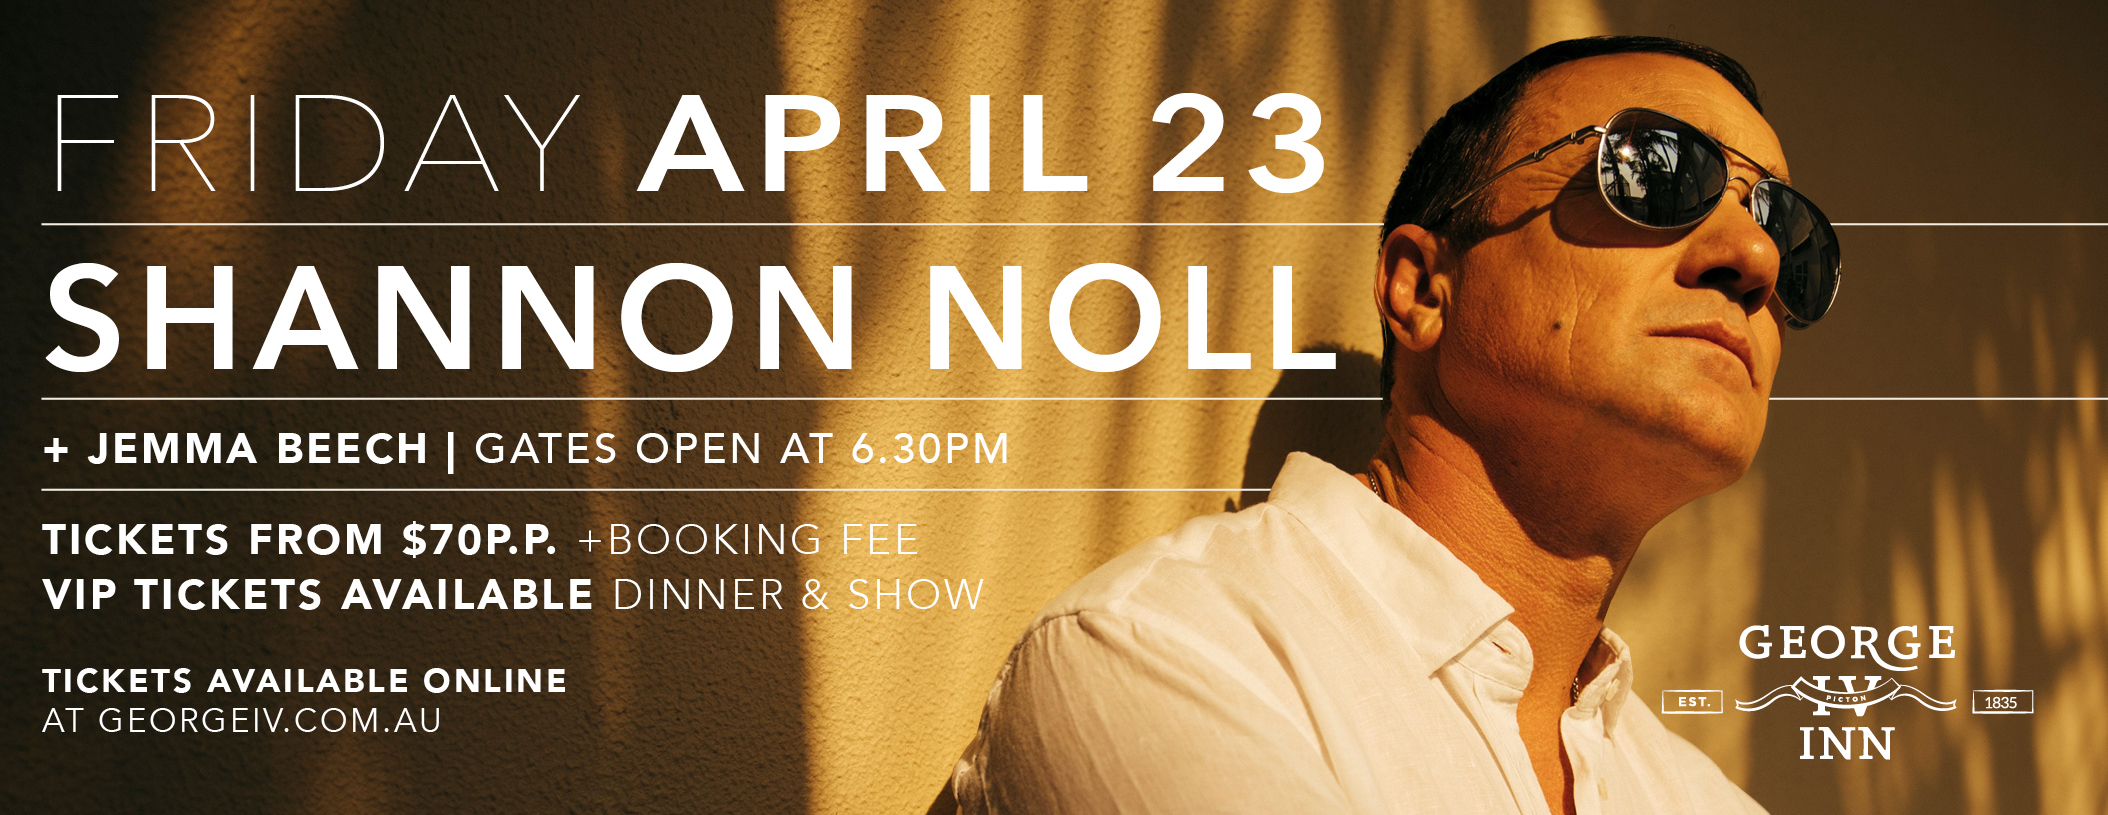 Shannon Noll at The George